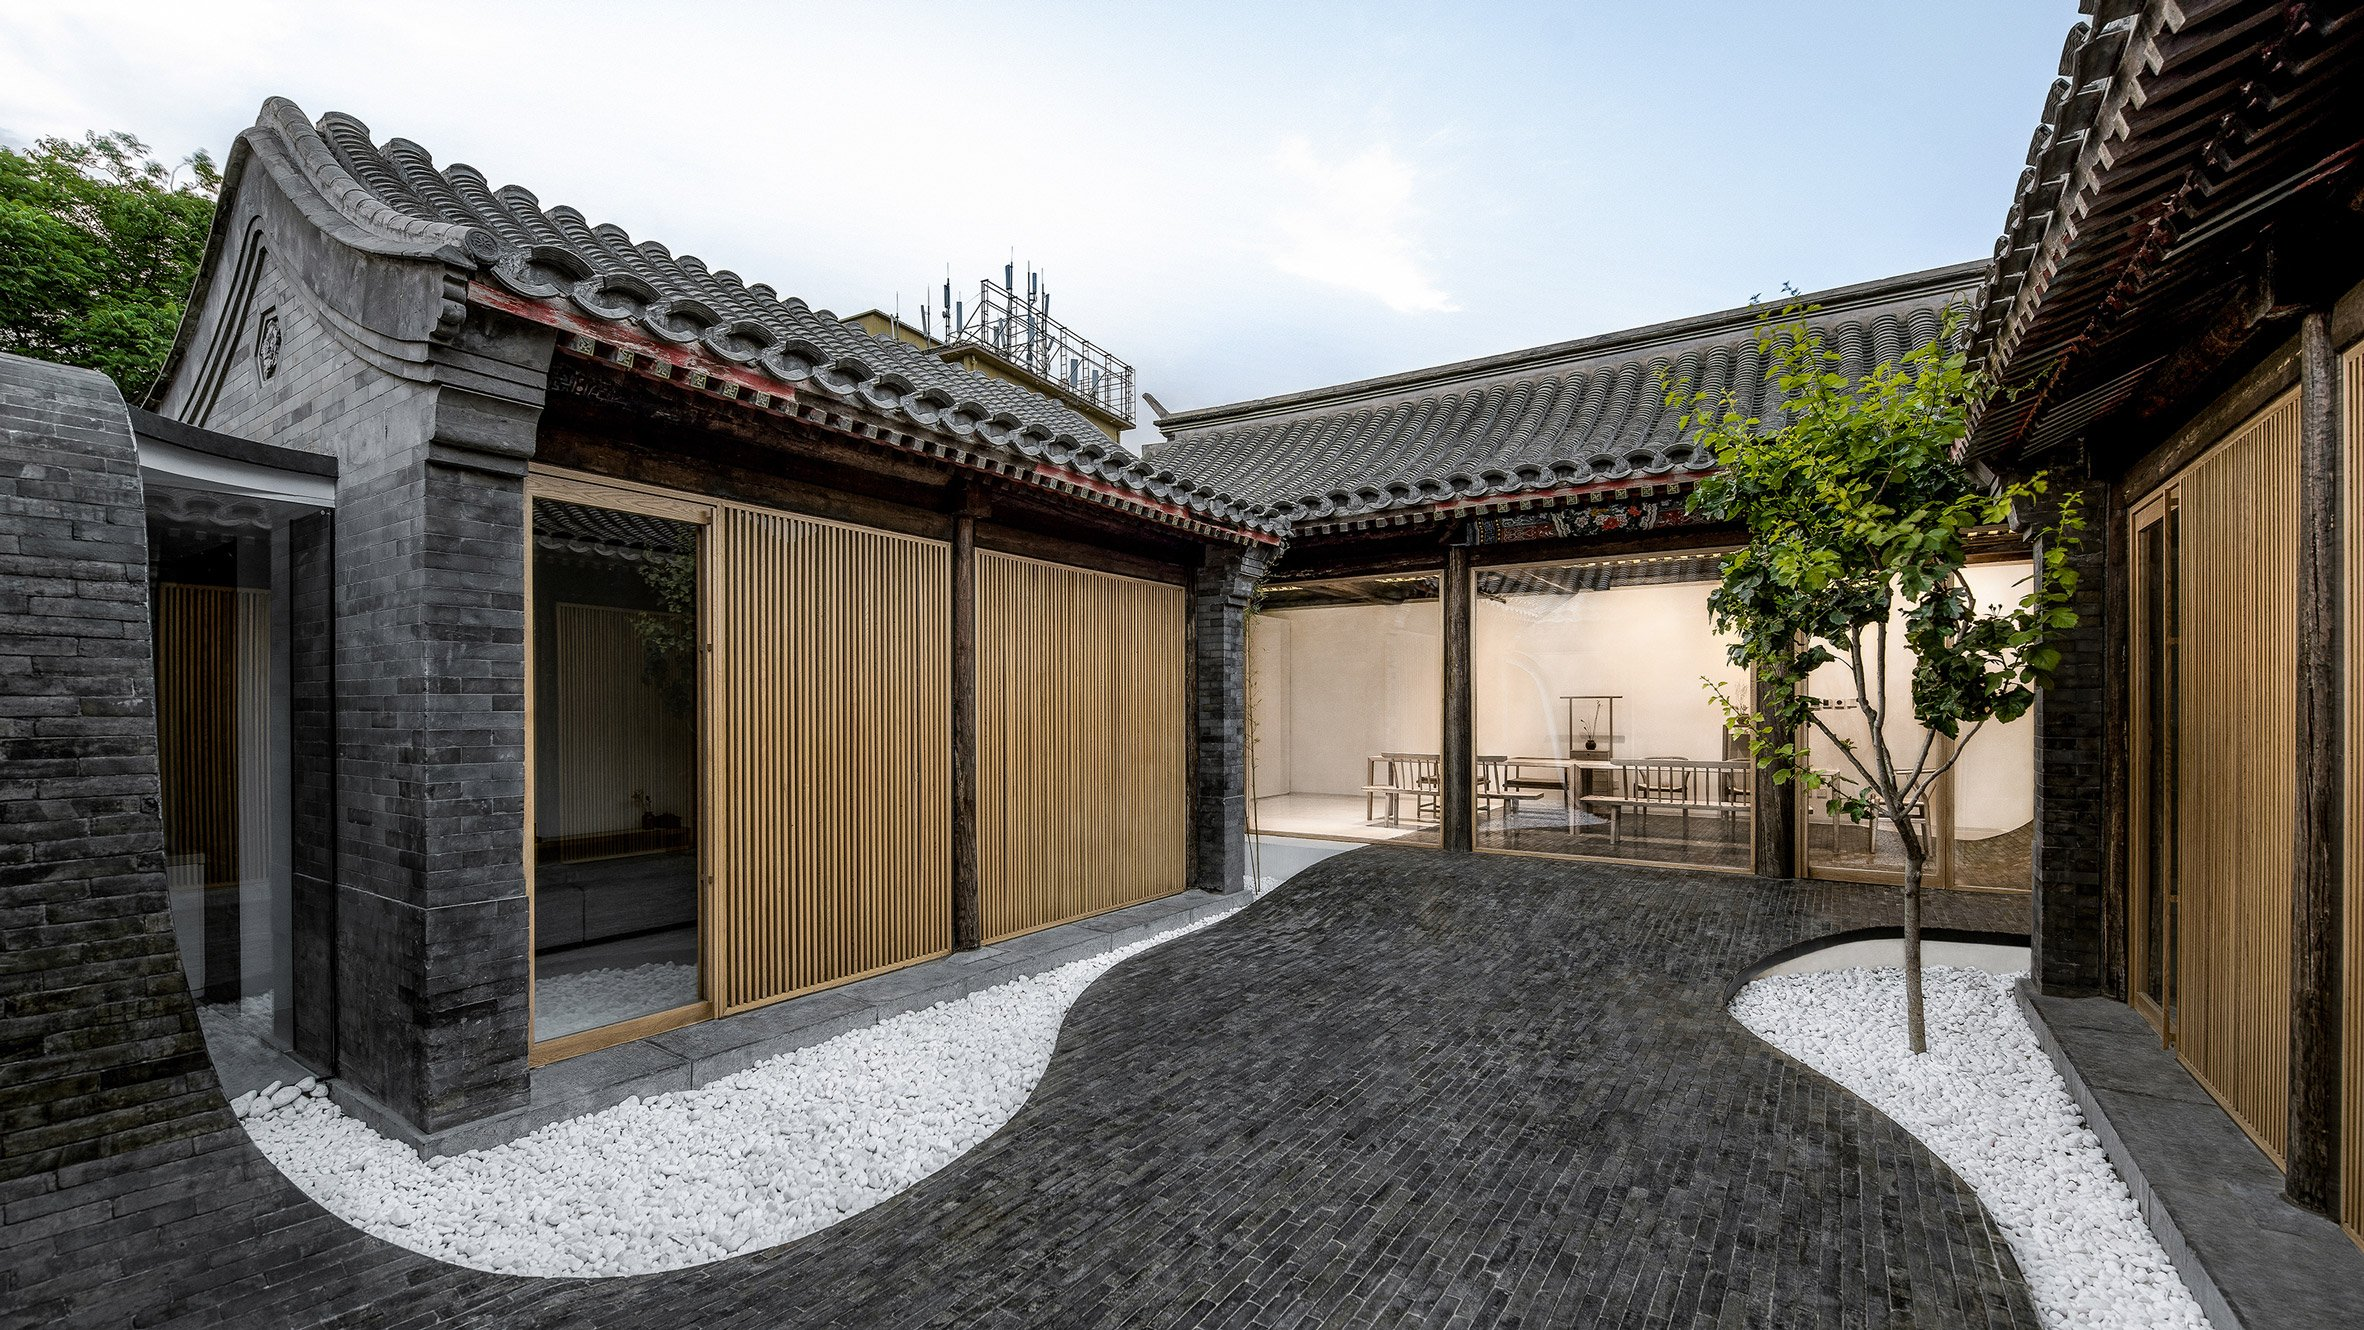 undulating paving connects inside and outside spaces at twisting undulating paving connects inside and outside spaces at twisting courtyard house